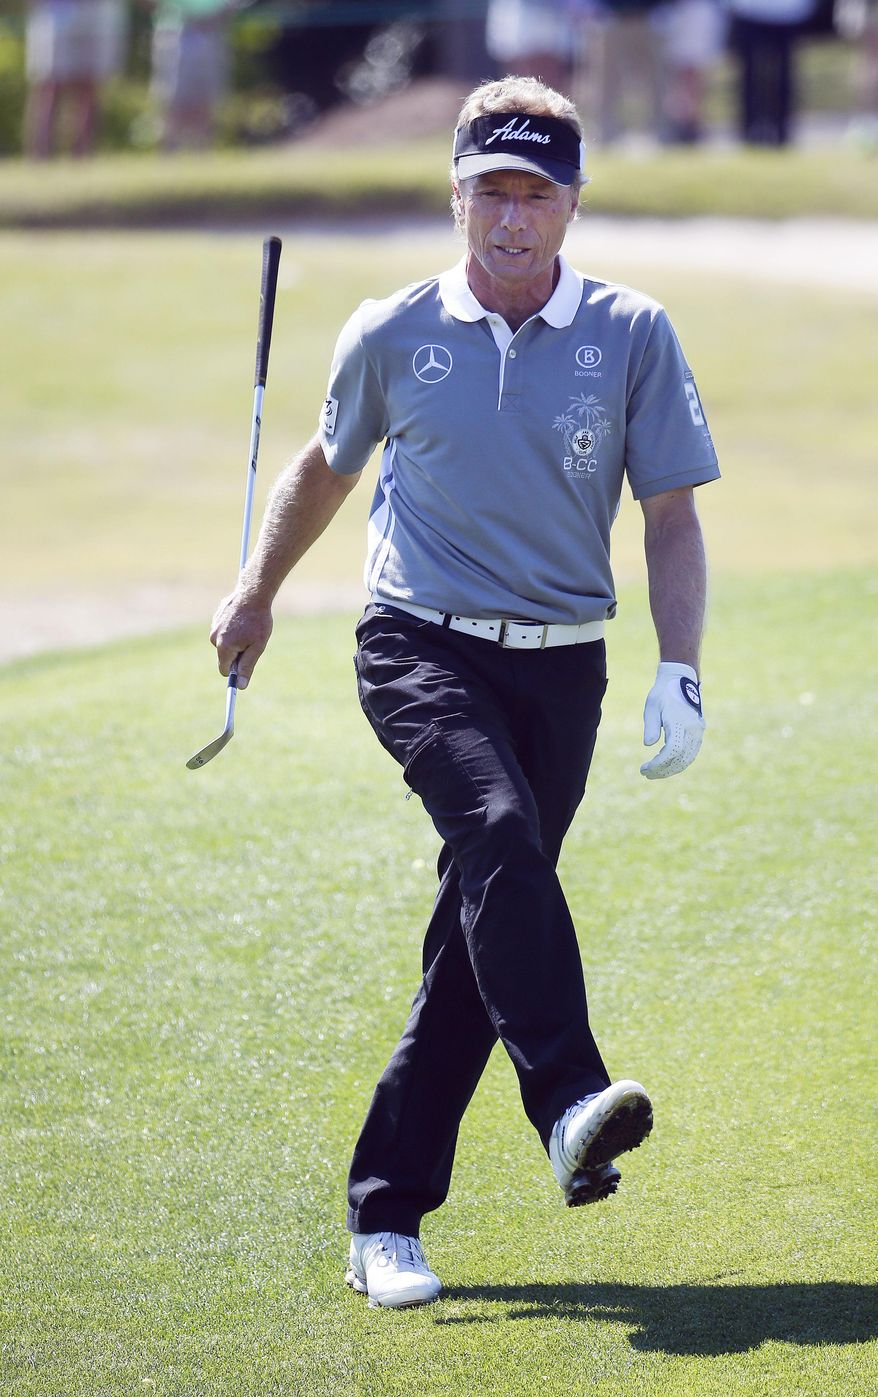 Bernhard Langer reacts after missing a eagle attempt on the 10th hole during the final round of play in the Greater Gwinnett Championship golf tournament of the Champions Tour, Sunday, April 20, 2014, in Duluth, Ga. (AP Photo/John Bazemore)